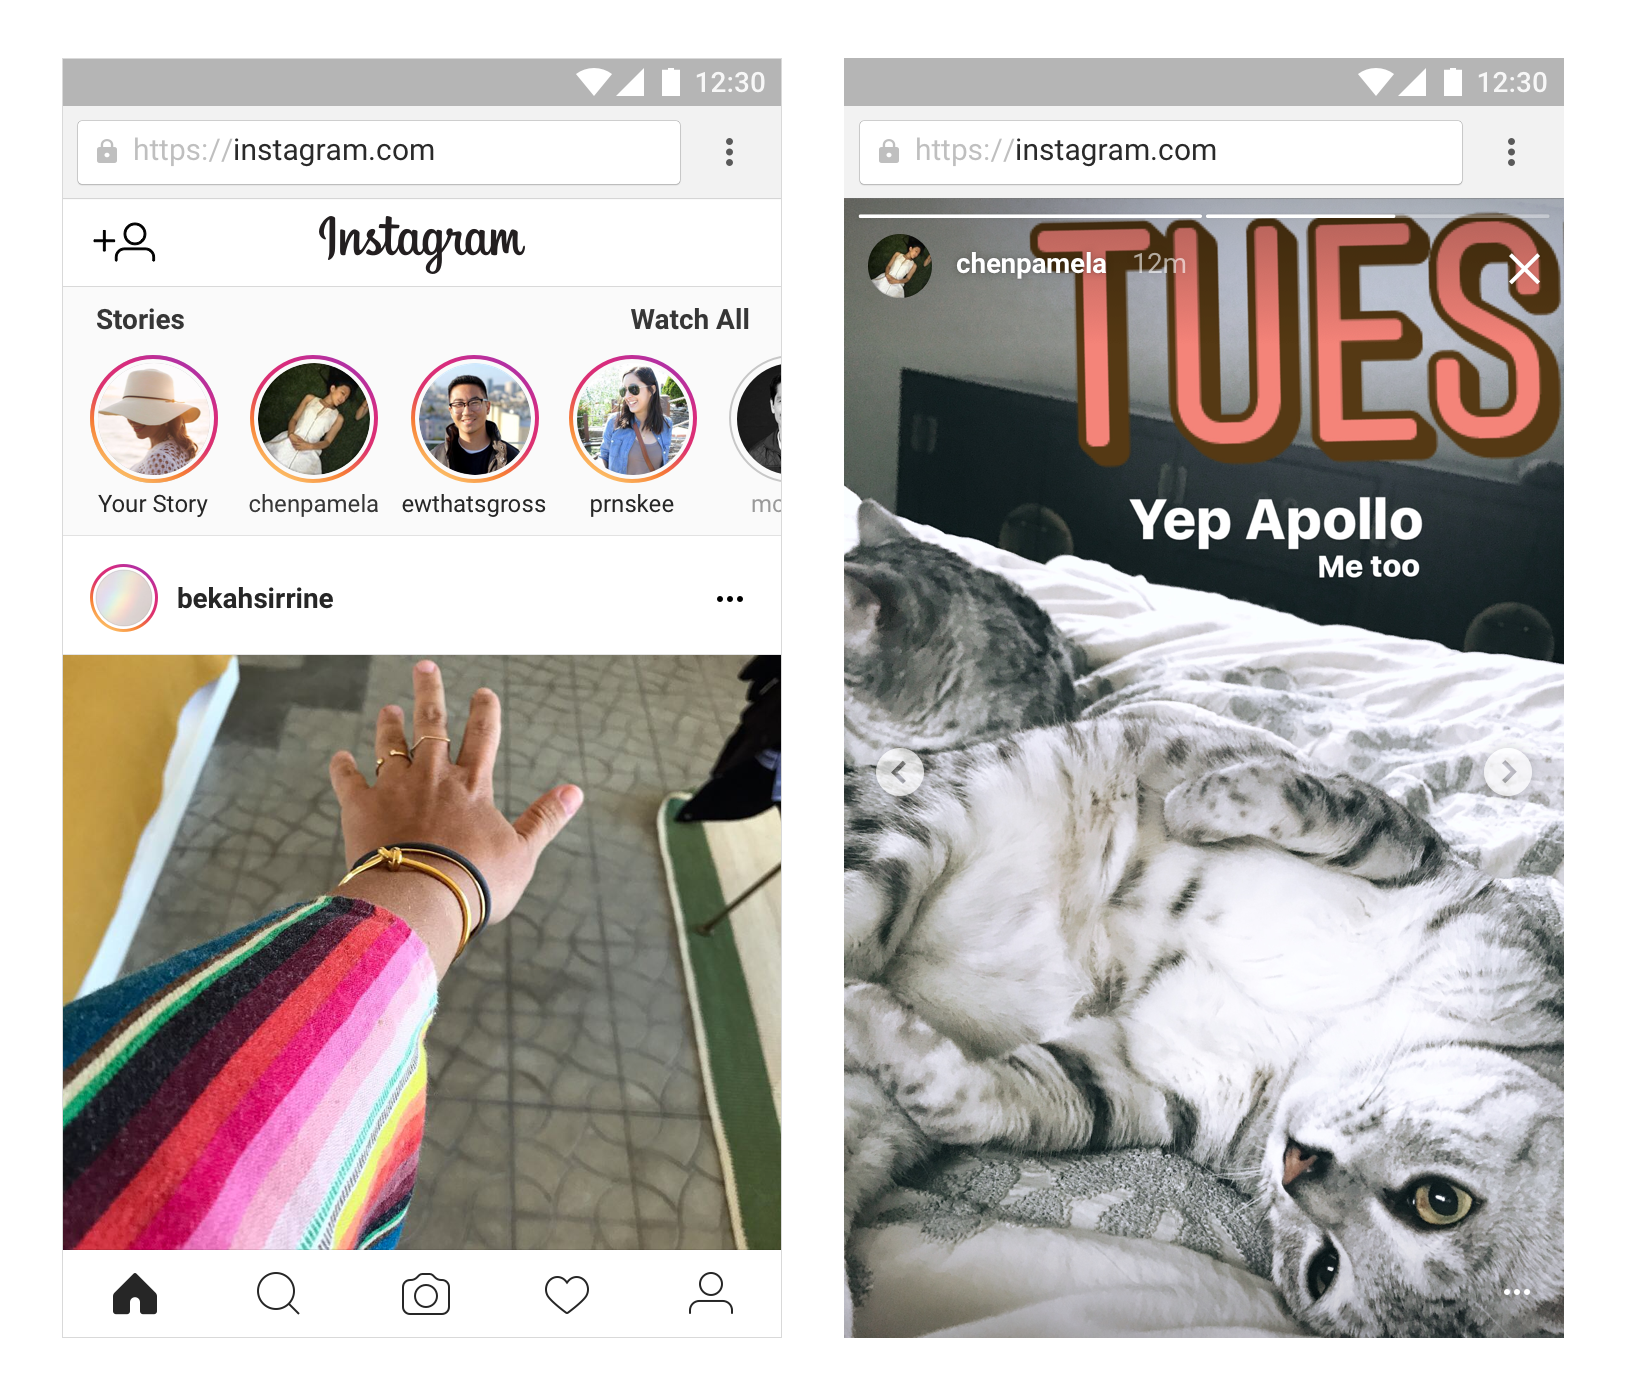 Instagram Stories on Mobile Web